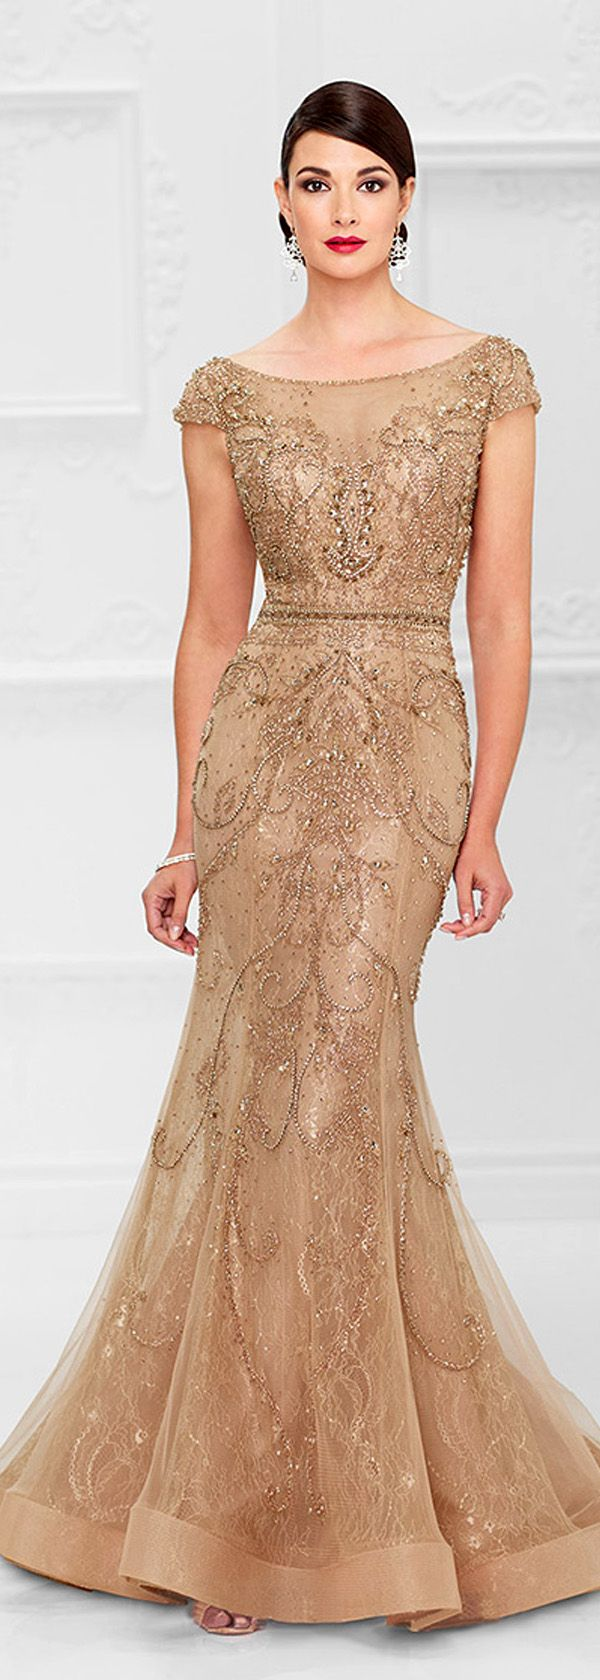 Stunning Chic Tulle u Lace Bateau Neckline Mermaid Mother Of The Bride Dresses With Beadings